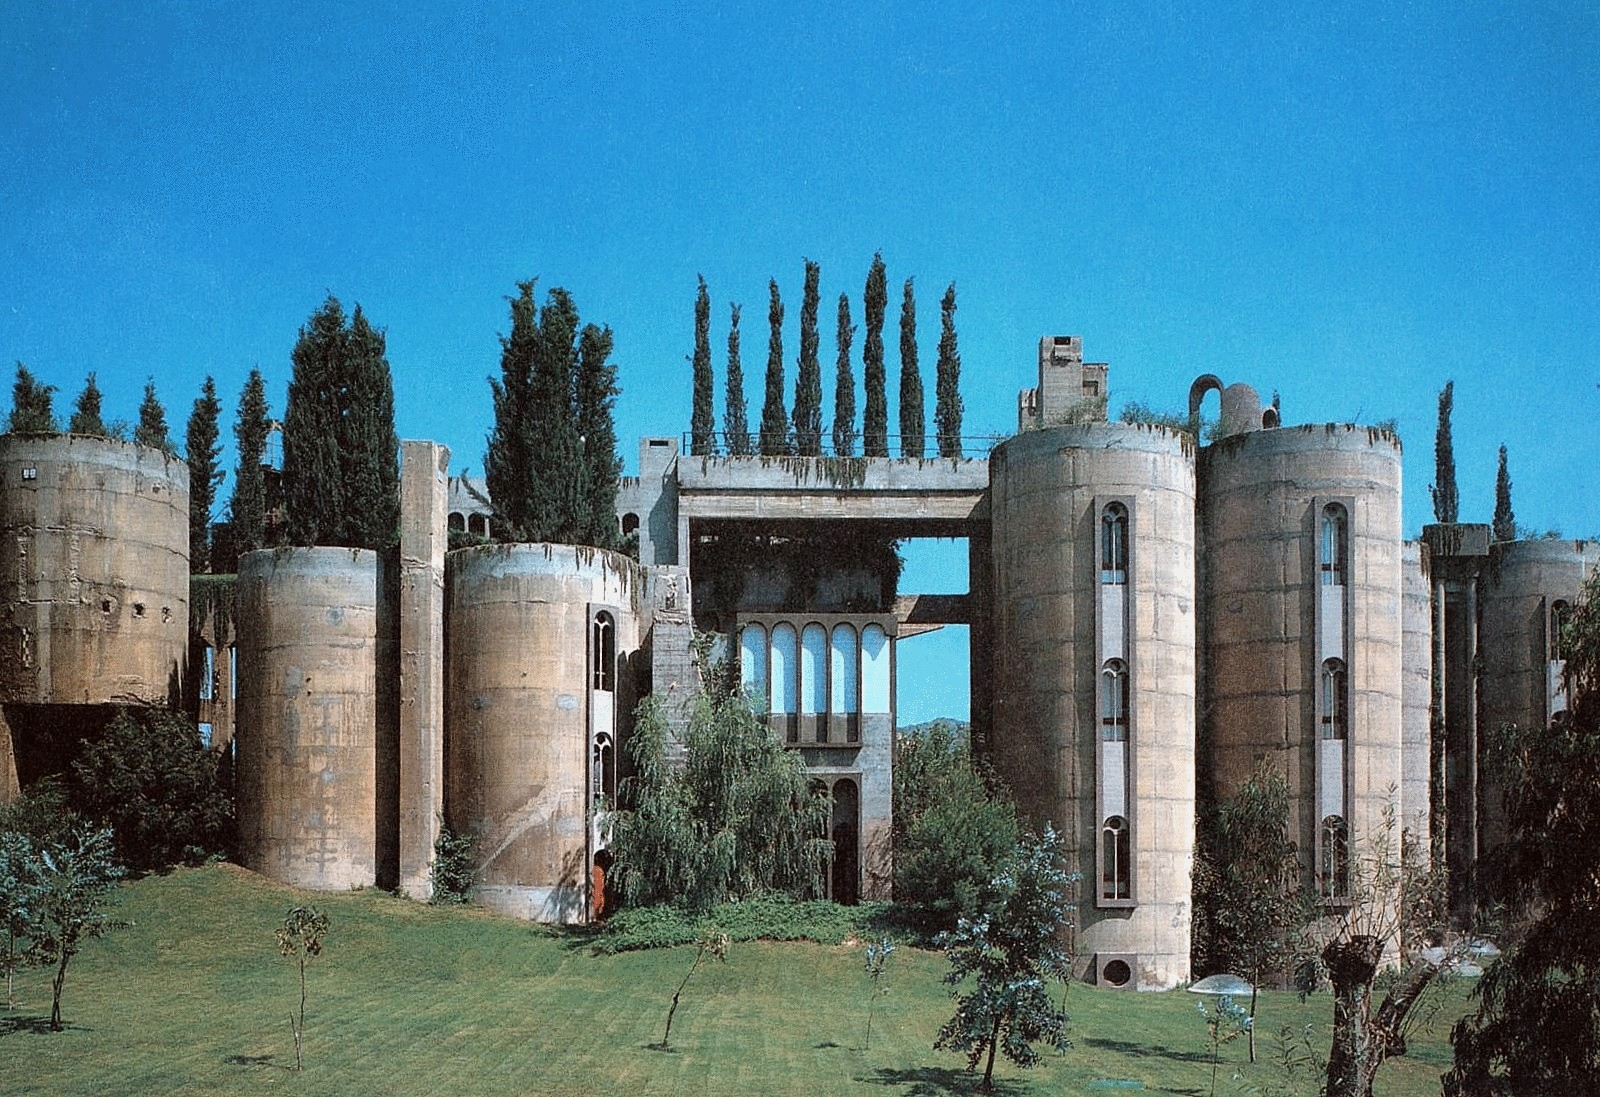 The Cement Factory